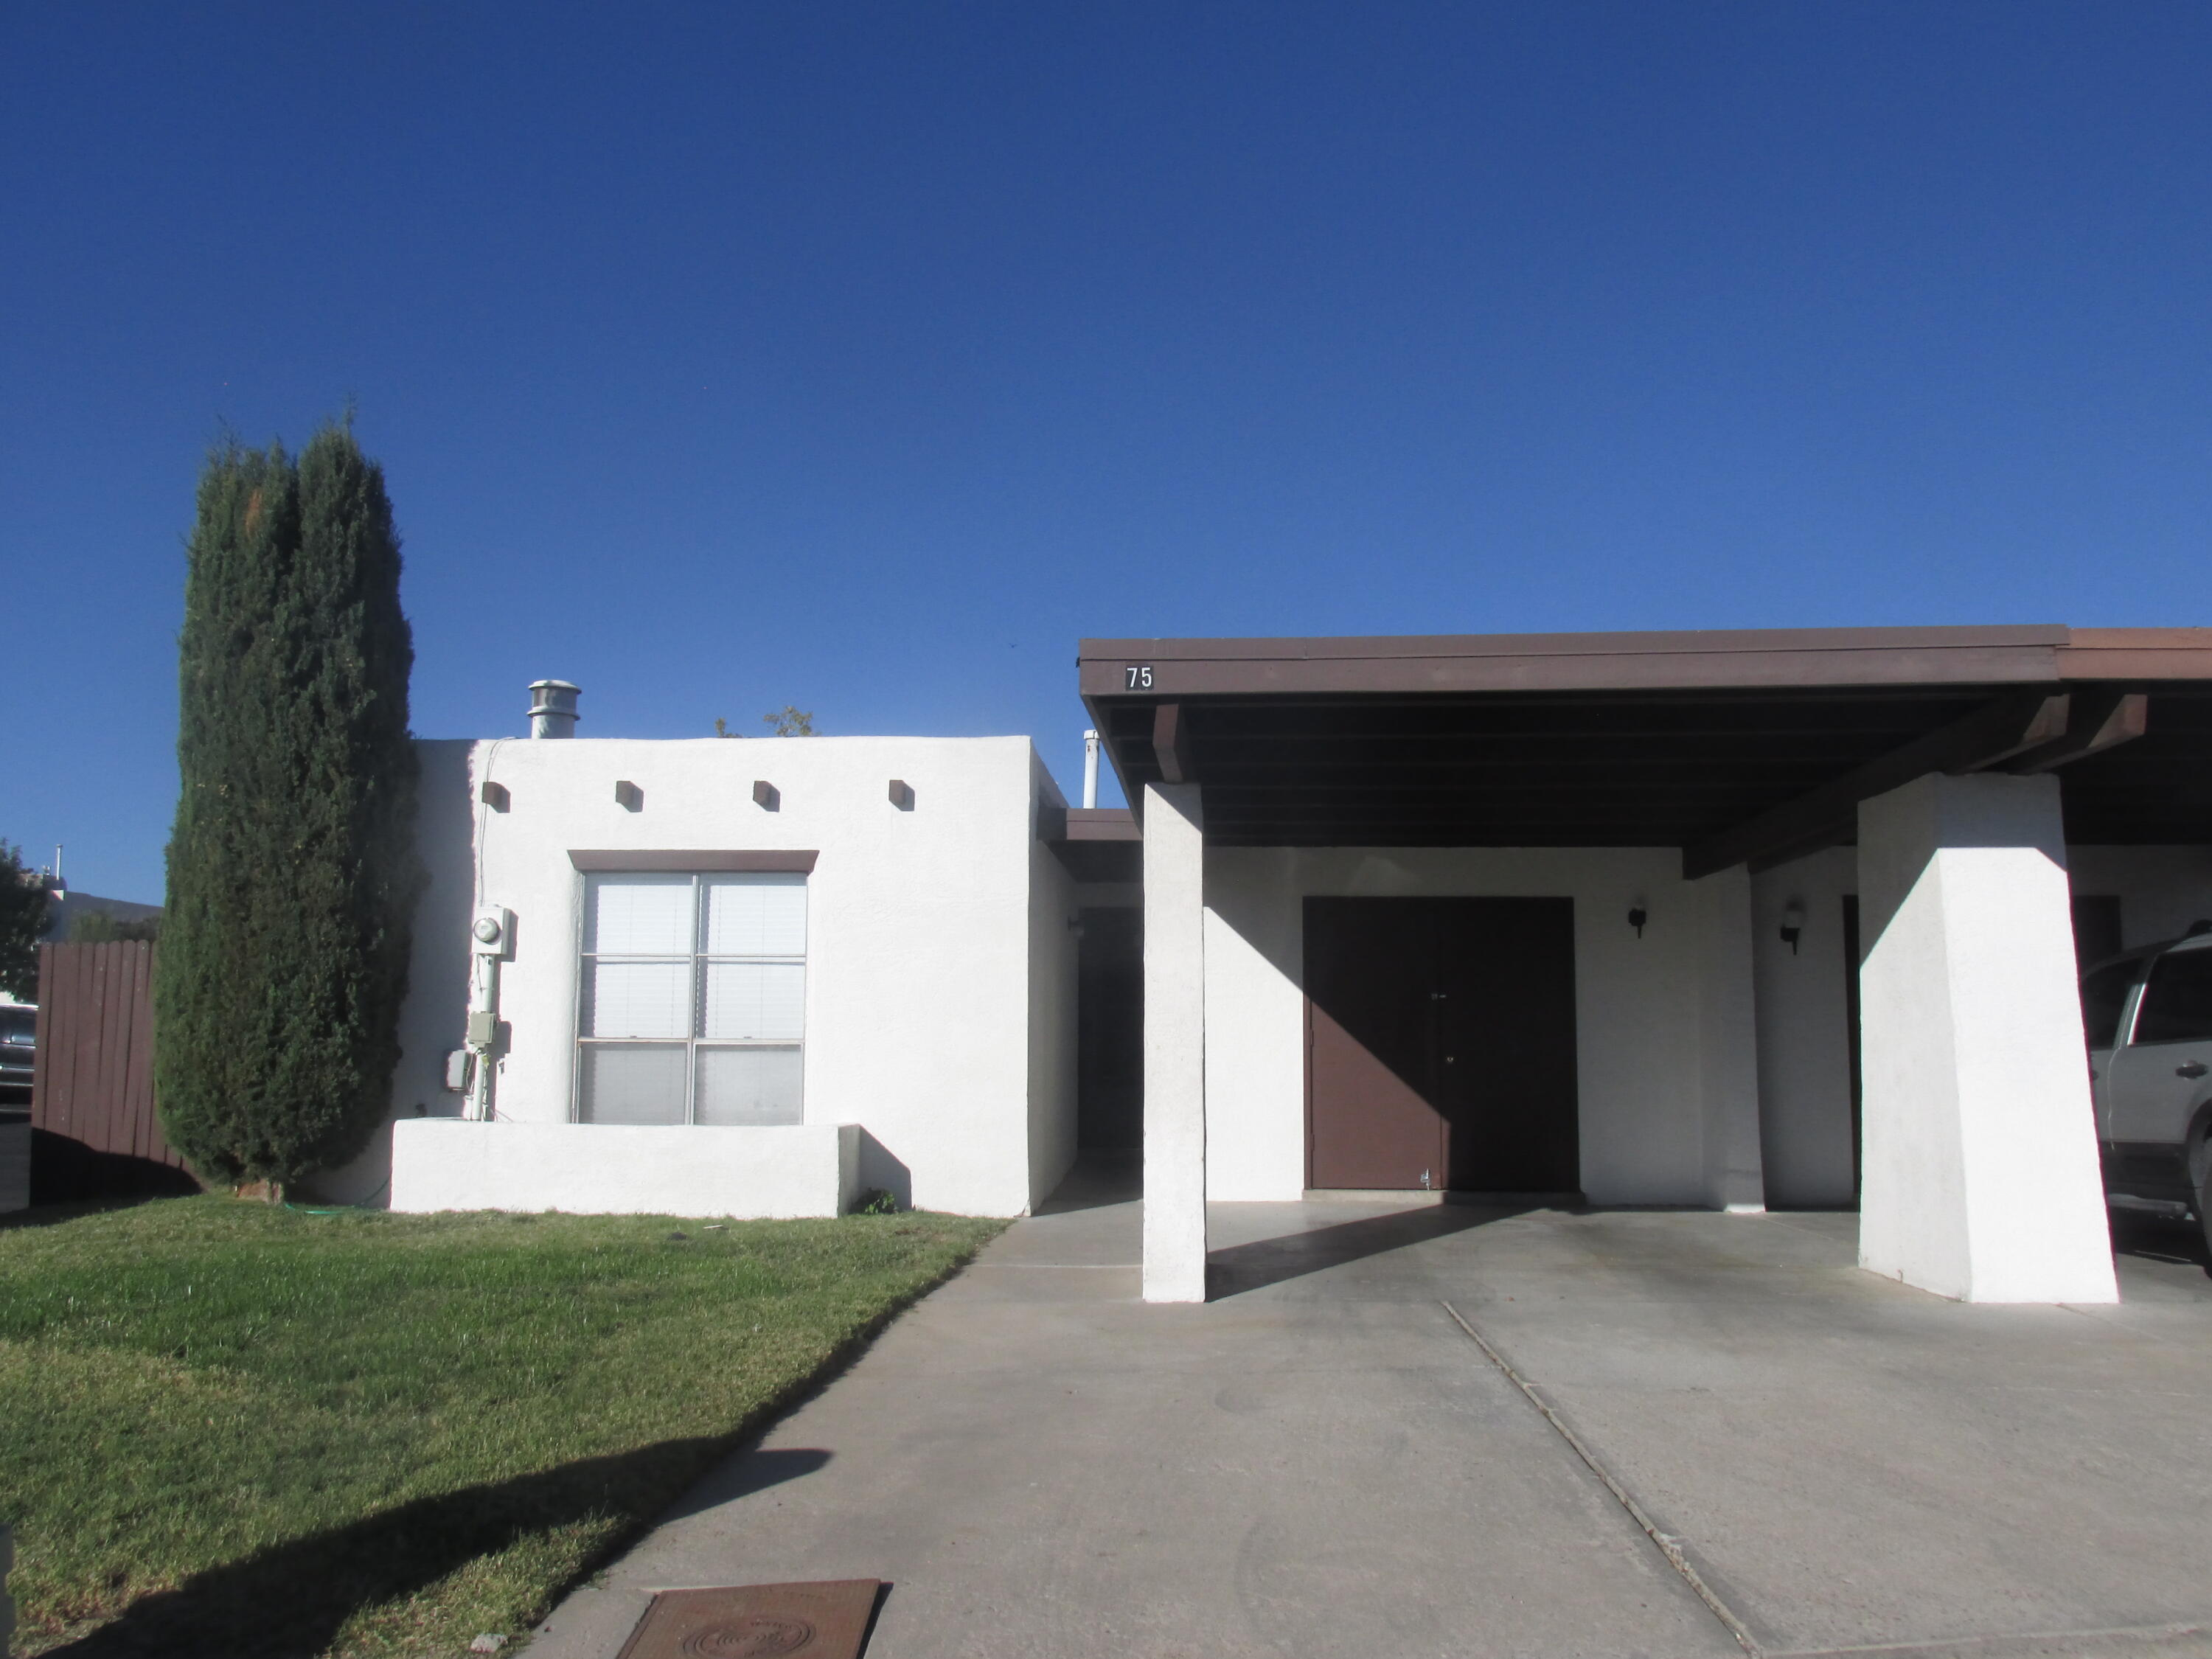 All dressed up and ready for a new owner!  Current owner installed a complete new kitchen including cabinetry, flooring and stainless appliances.  The bathroom has also been completely redone and shows great!This unit has an excellent location as there is additional parking across the street AND the swimming pool is across the street to the East.  The HOA is active and keeps the central park in great condition.  Take a look!  Great location, close to a multitude of small businesses, restaurants, banks, etc as well as bus stop.  Don't miss it!